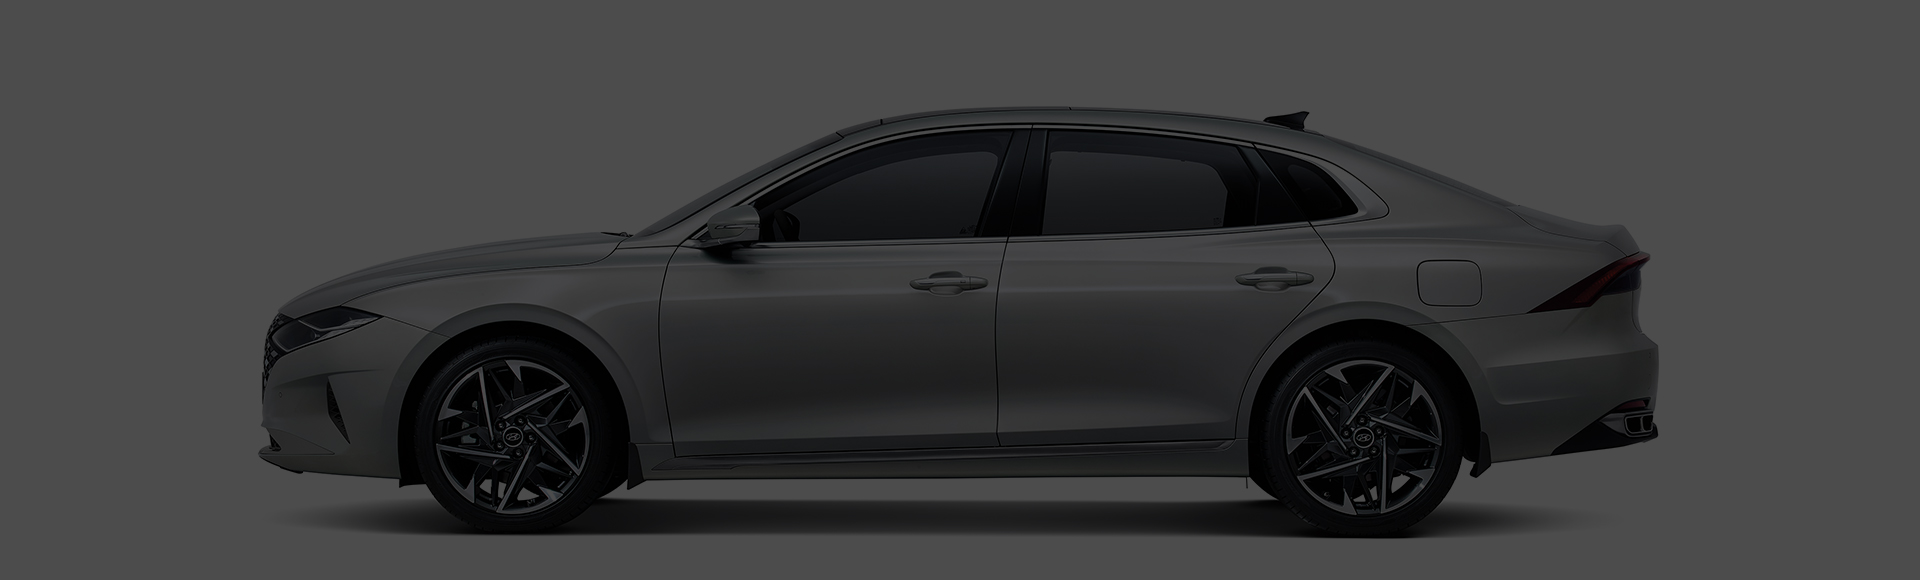 Azera exterior side design